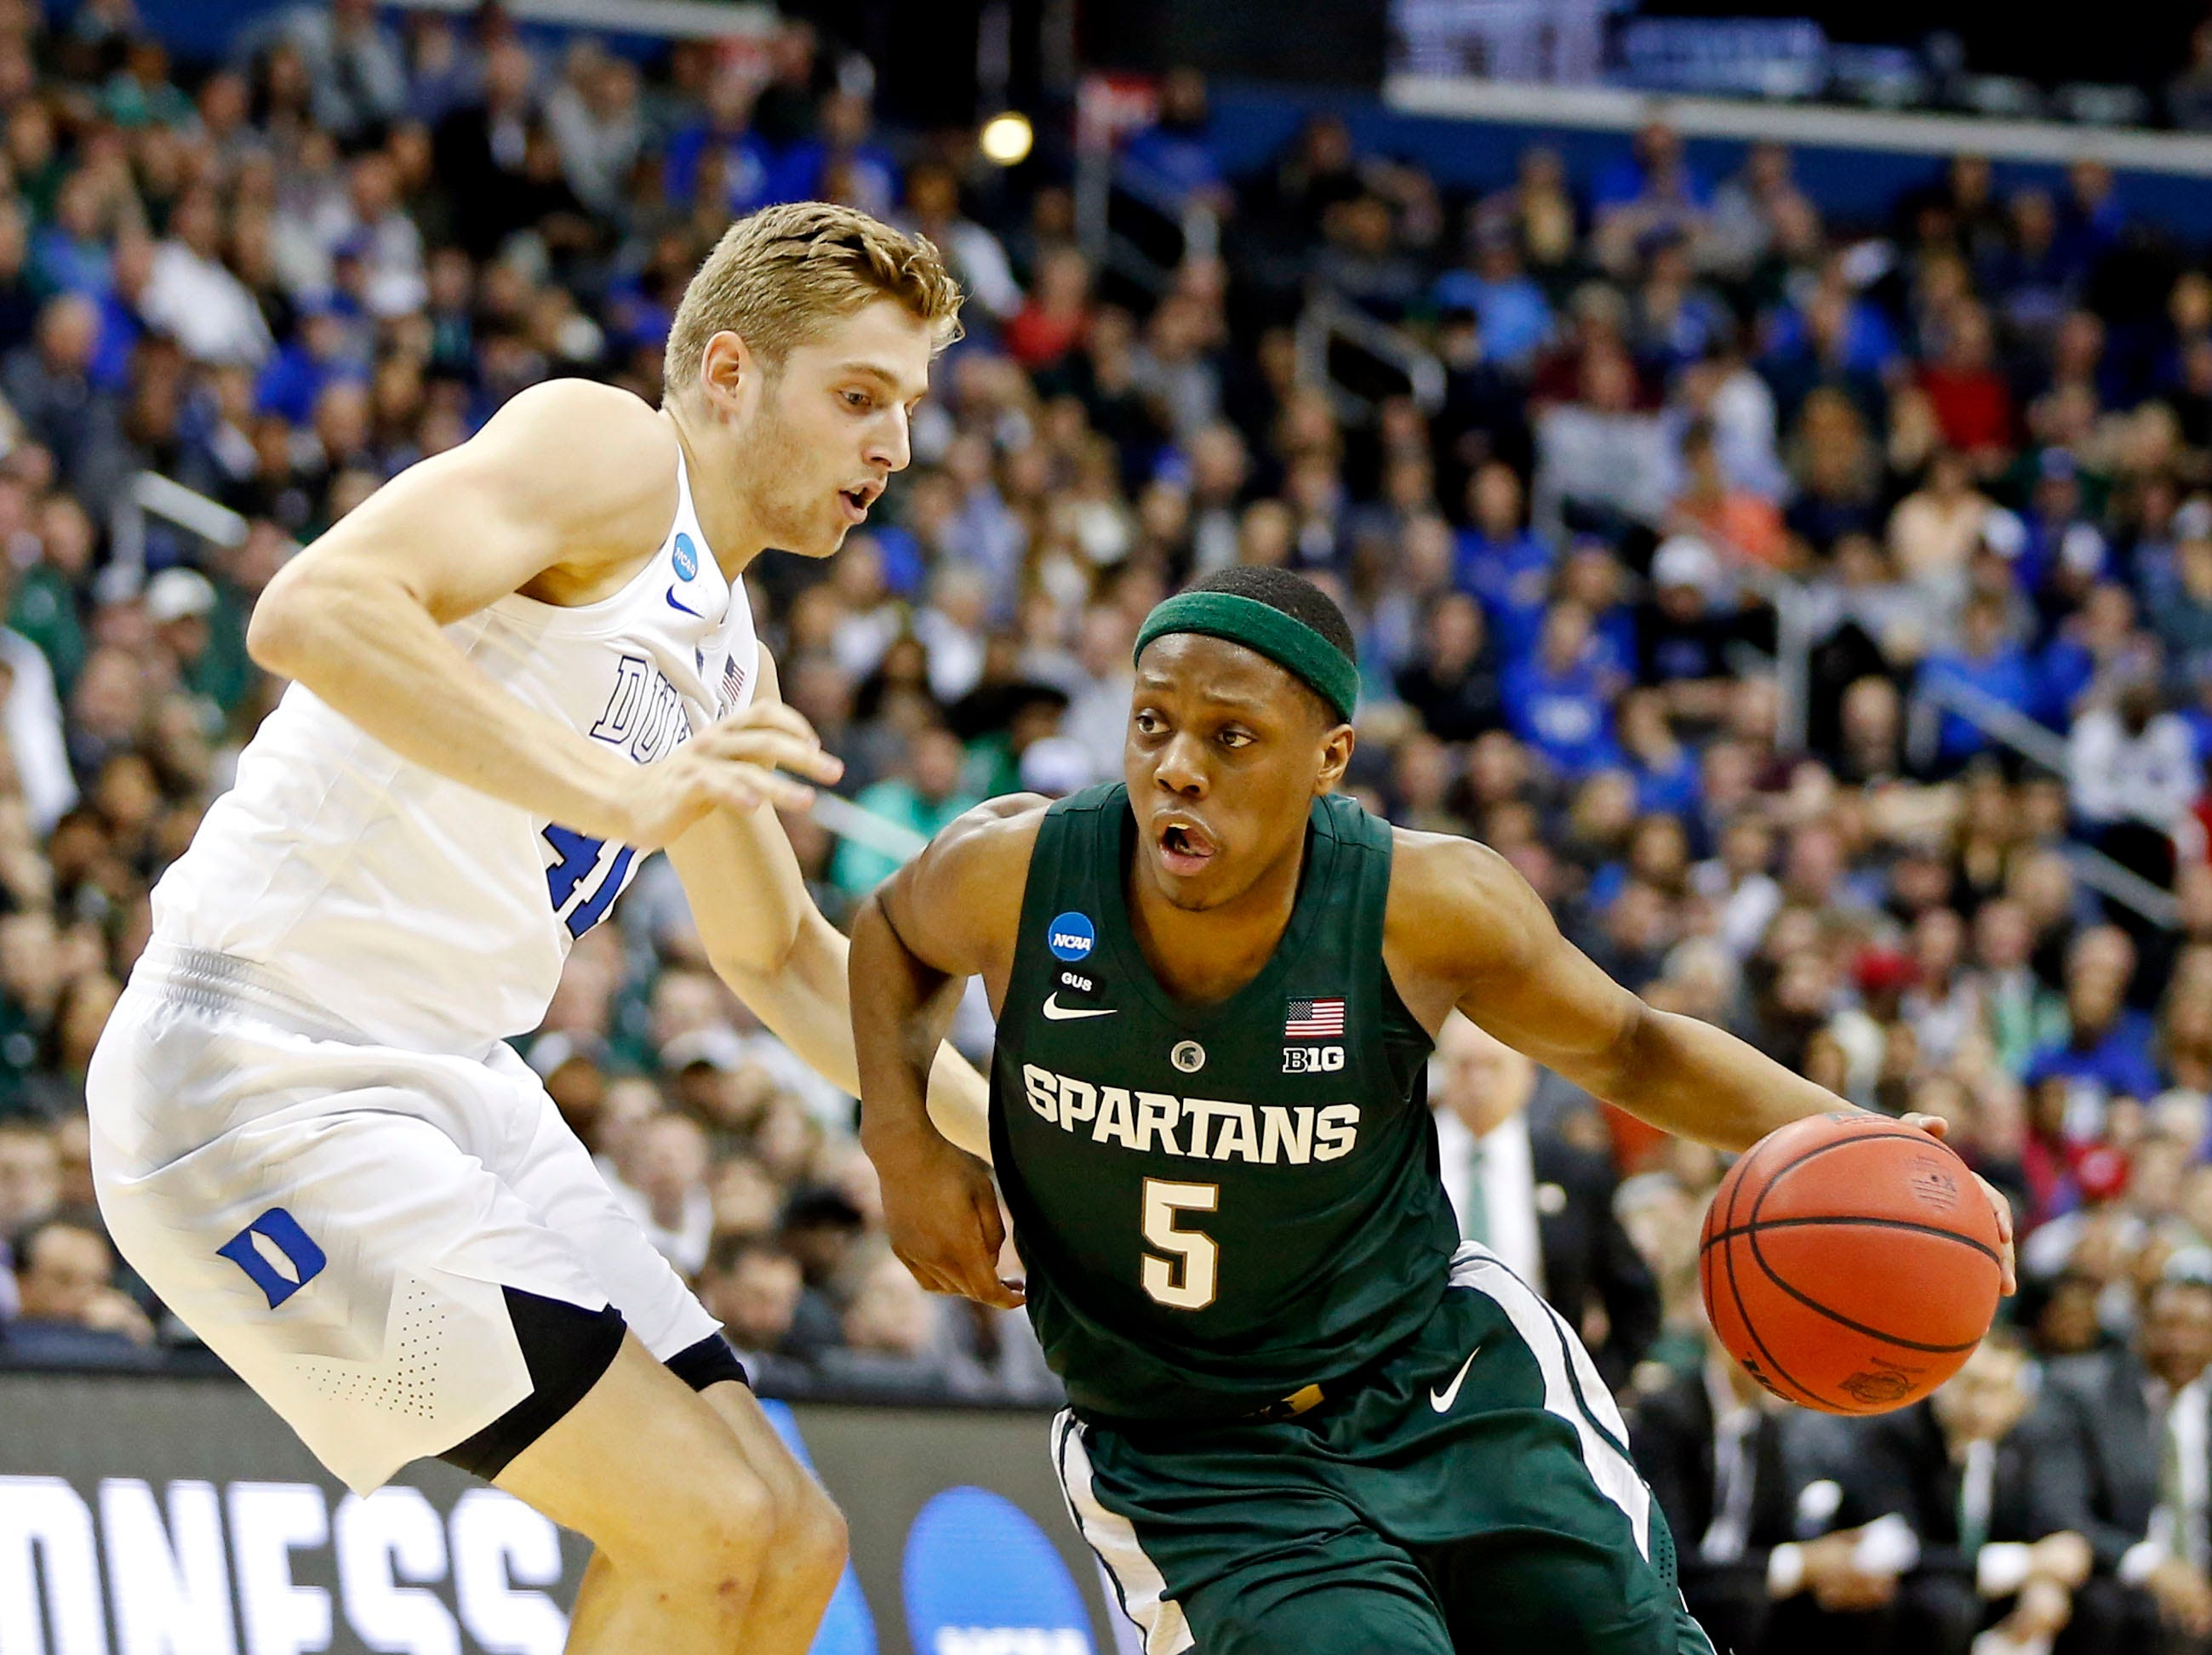 Mar 31, 2019; Washington, DC, USA; Michigan State Spartans guard Cassius Winston (5) drives to the basket against Duke Blue Devils forward Jack White (41) during the first half in the championship game of the east regional of the 2019 NCAA Tournament at Capital One Arena. Mandatory Credit: Amber Searls-USA TODAY Sports